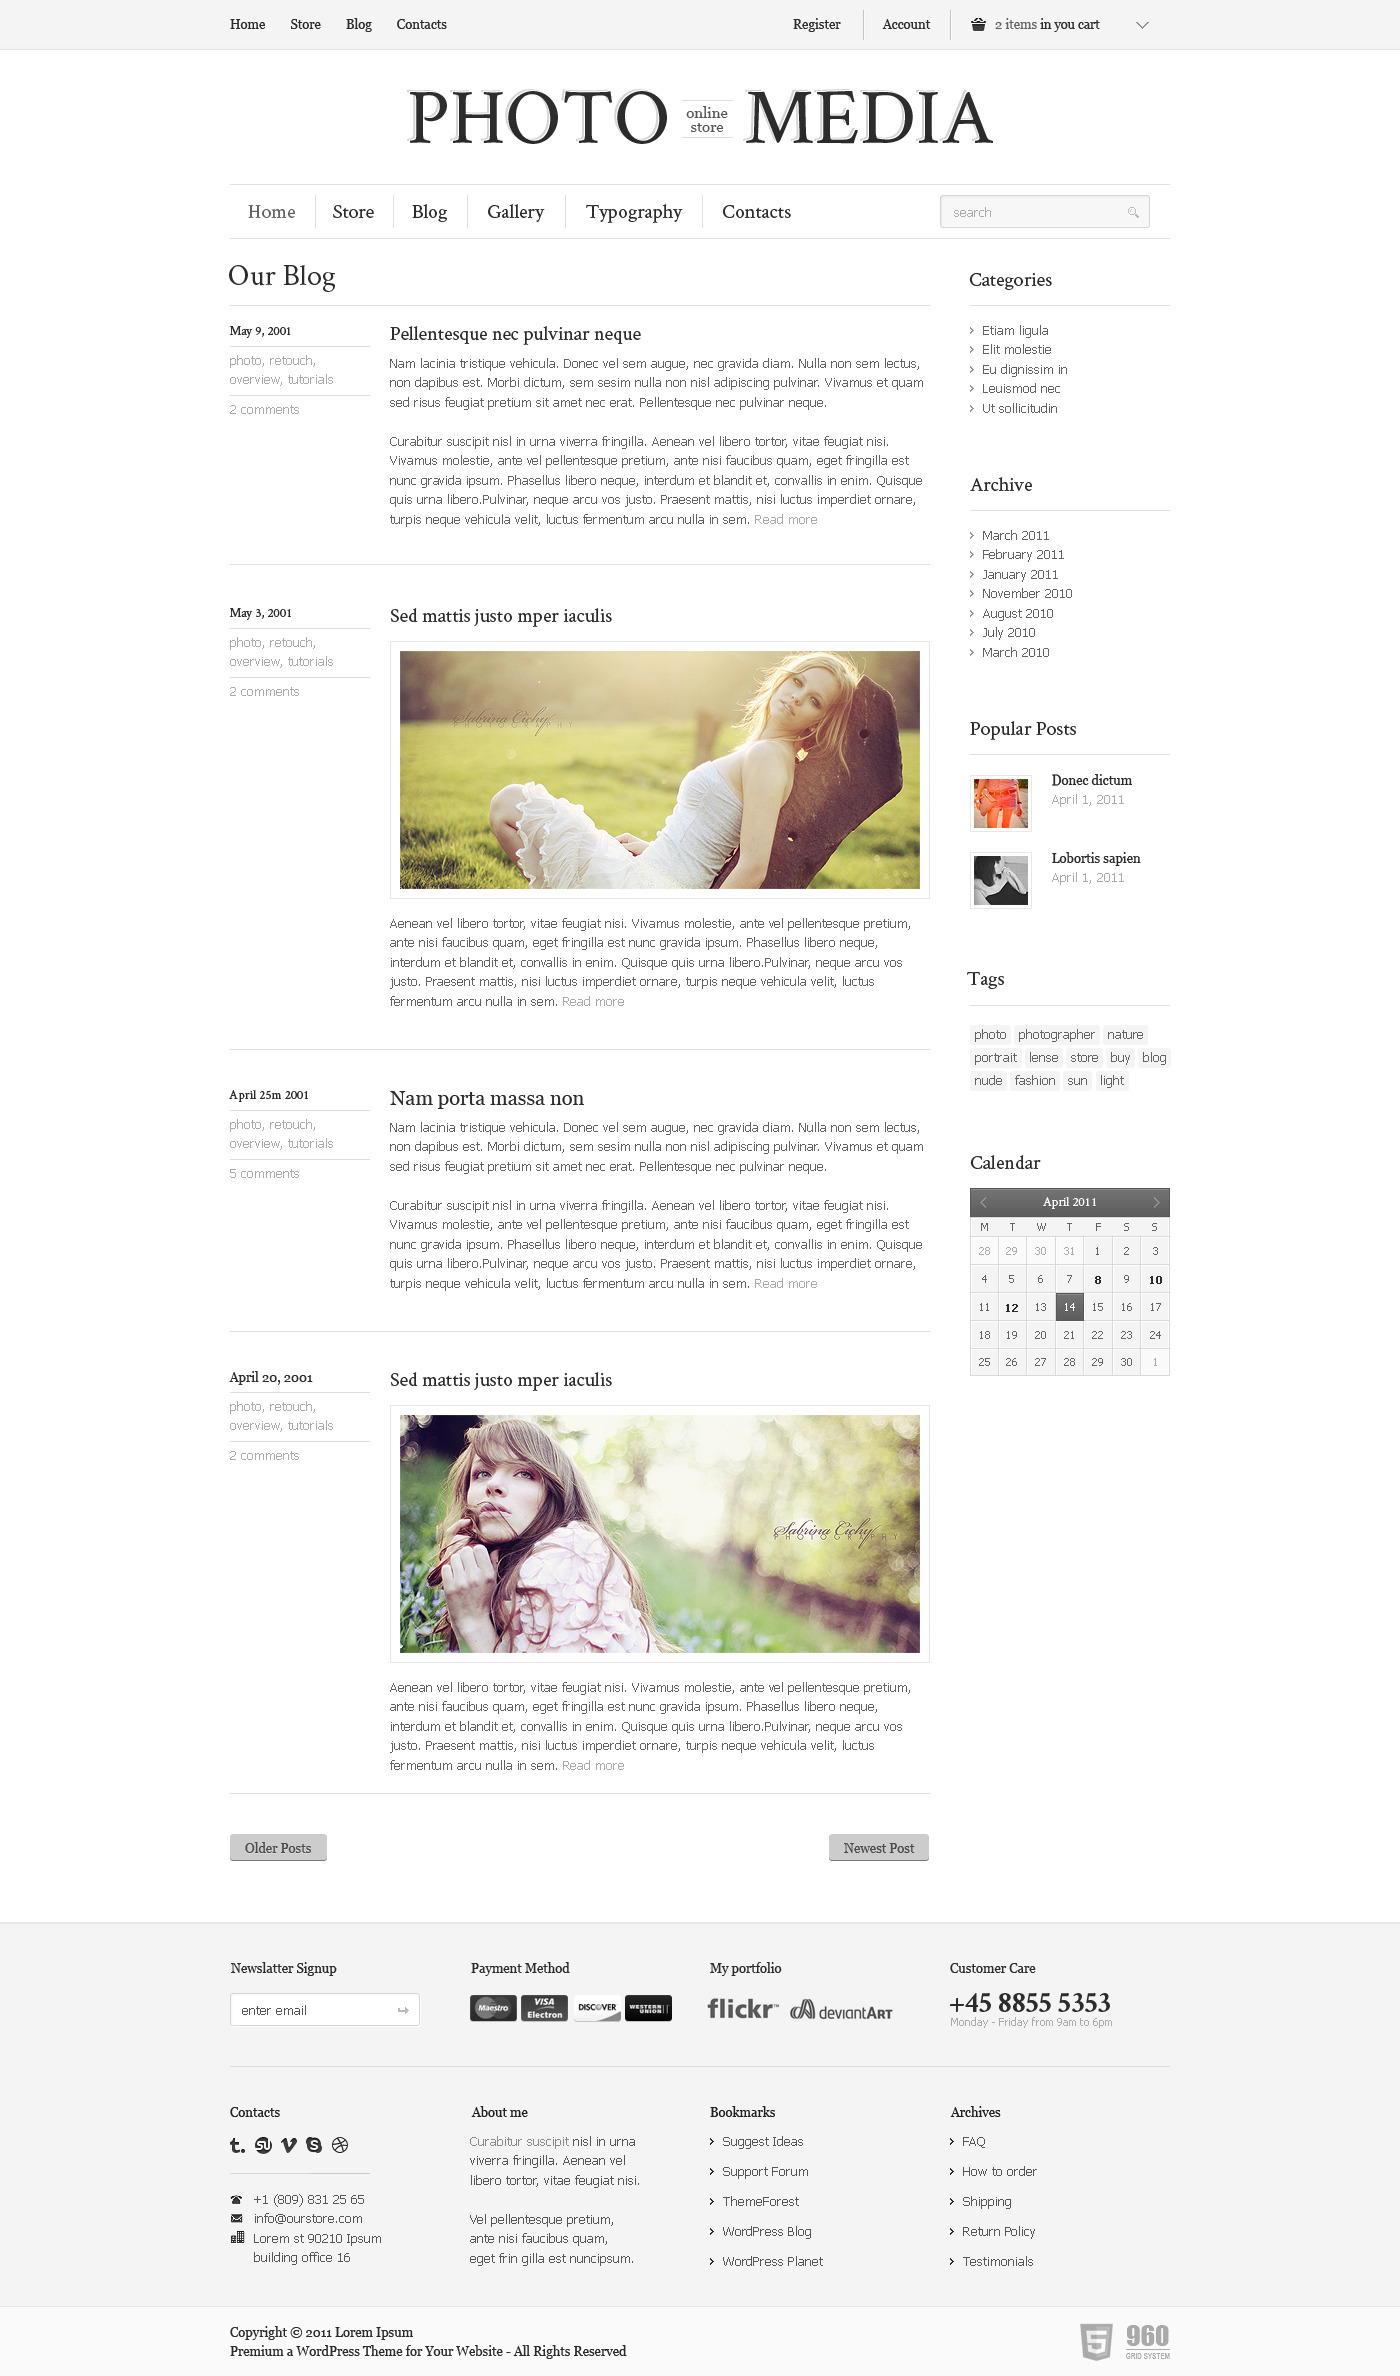 Phomedia Wordpress Theme - A WP E-Commerce theme - Blog page overview